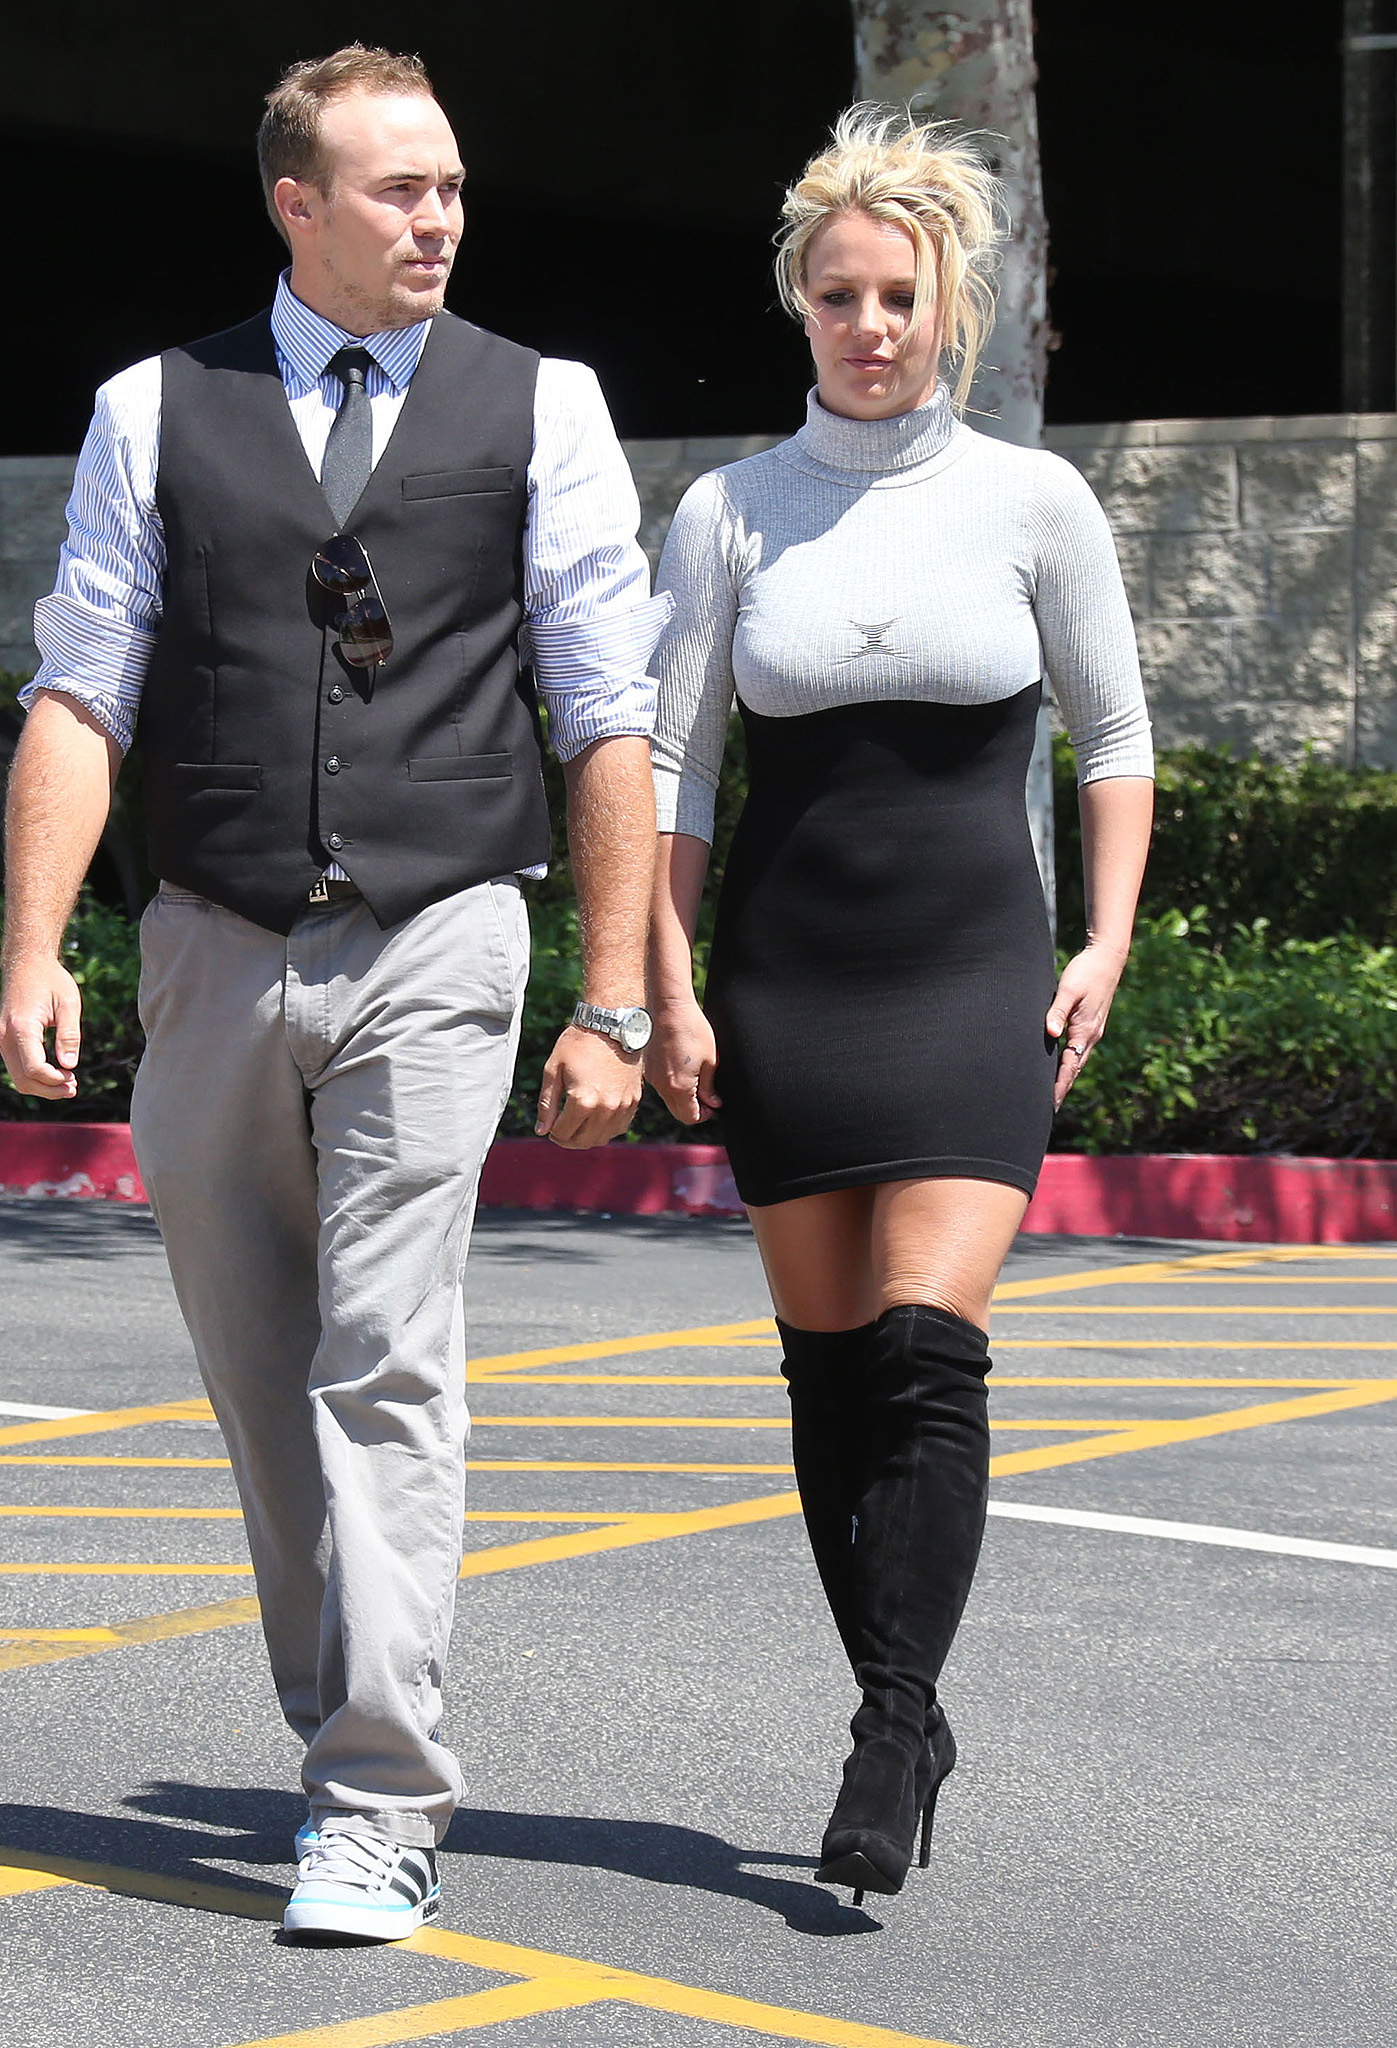 Britney Spears heads to church with her boyfriend. (Splash News)